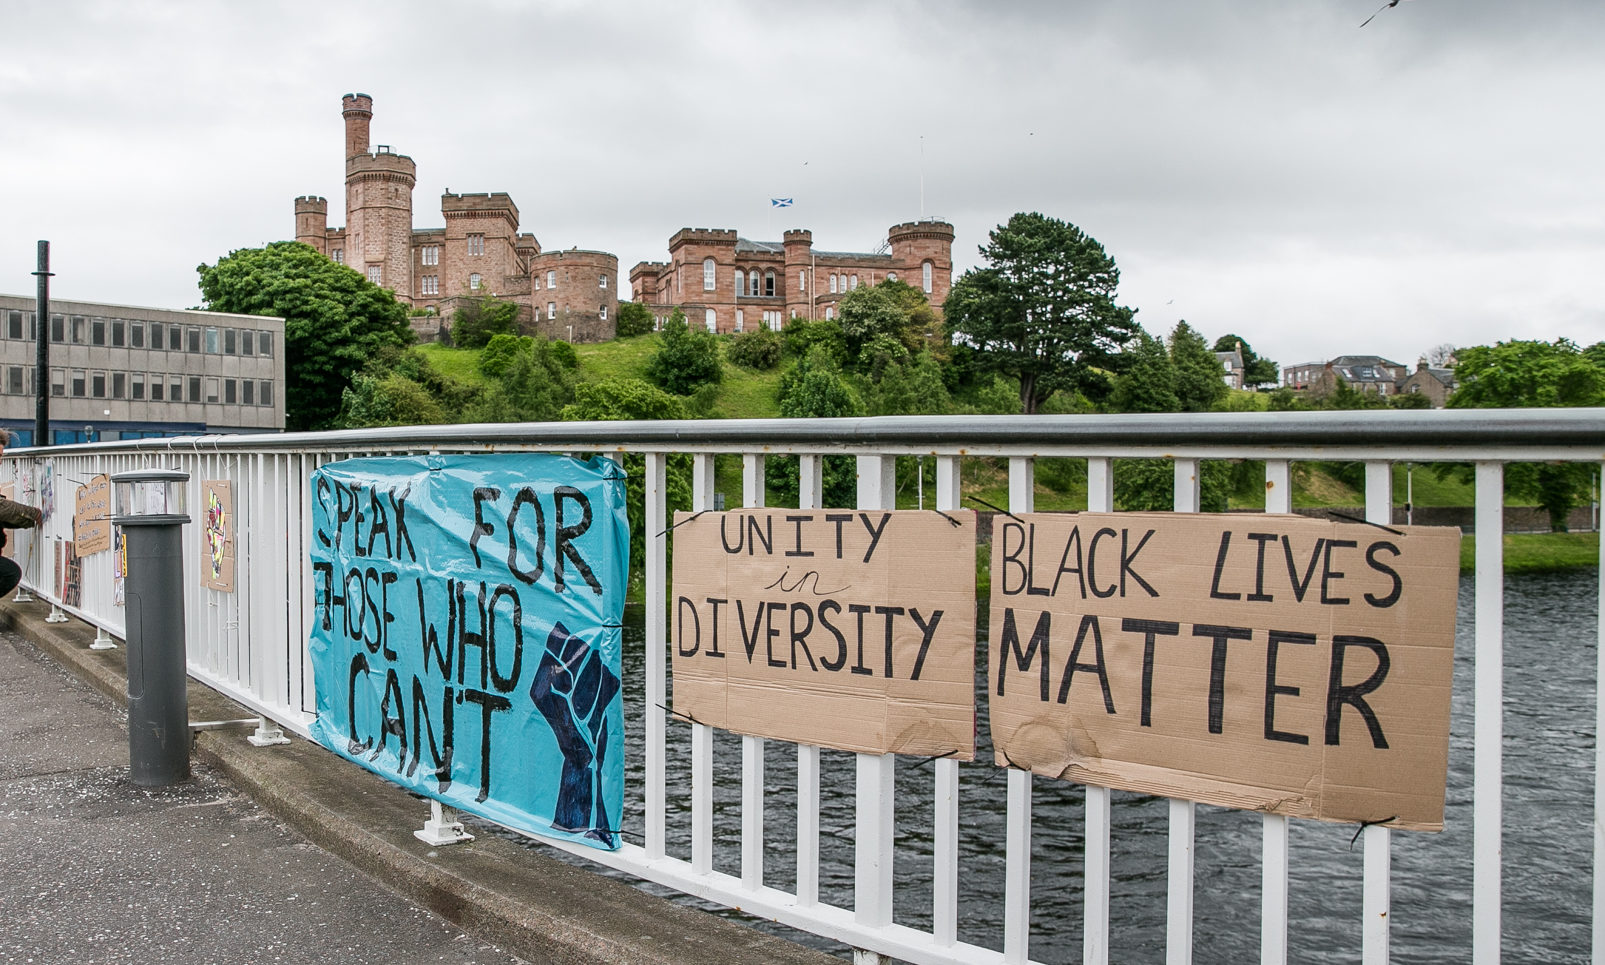 Signs and banners in support of Black Lives Matter on the Ness Bridge.